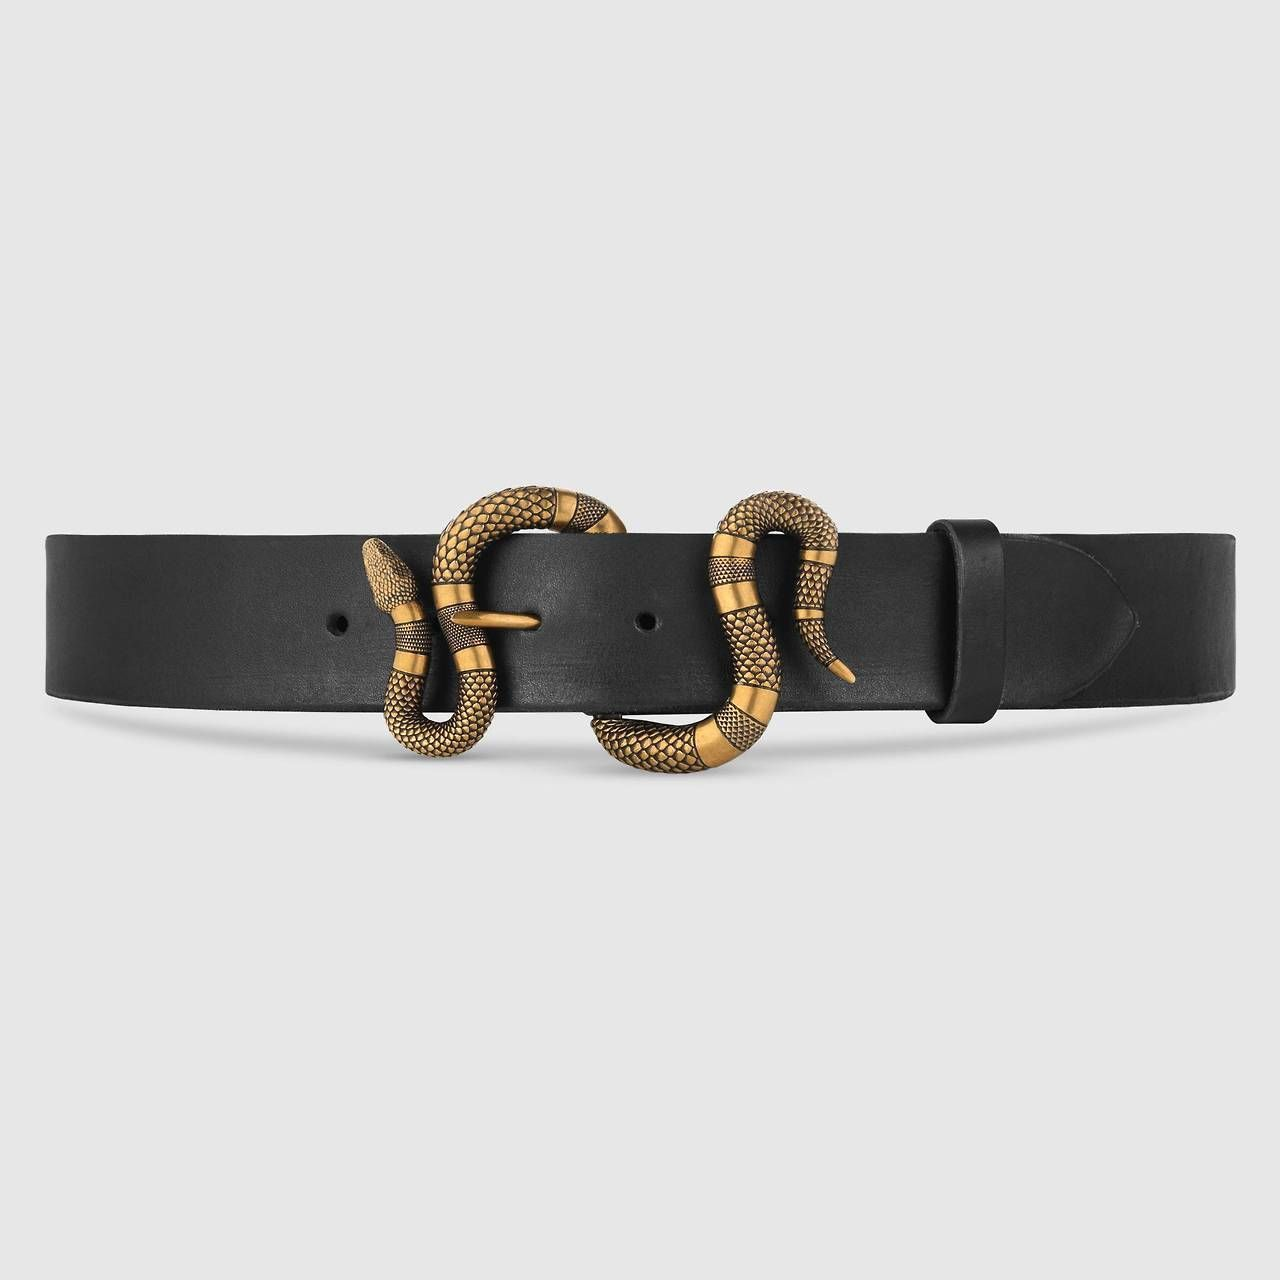 """3044d2458ae tngeriine  """"Gucci Leather Belt With Snake Buckle """""""